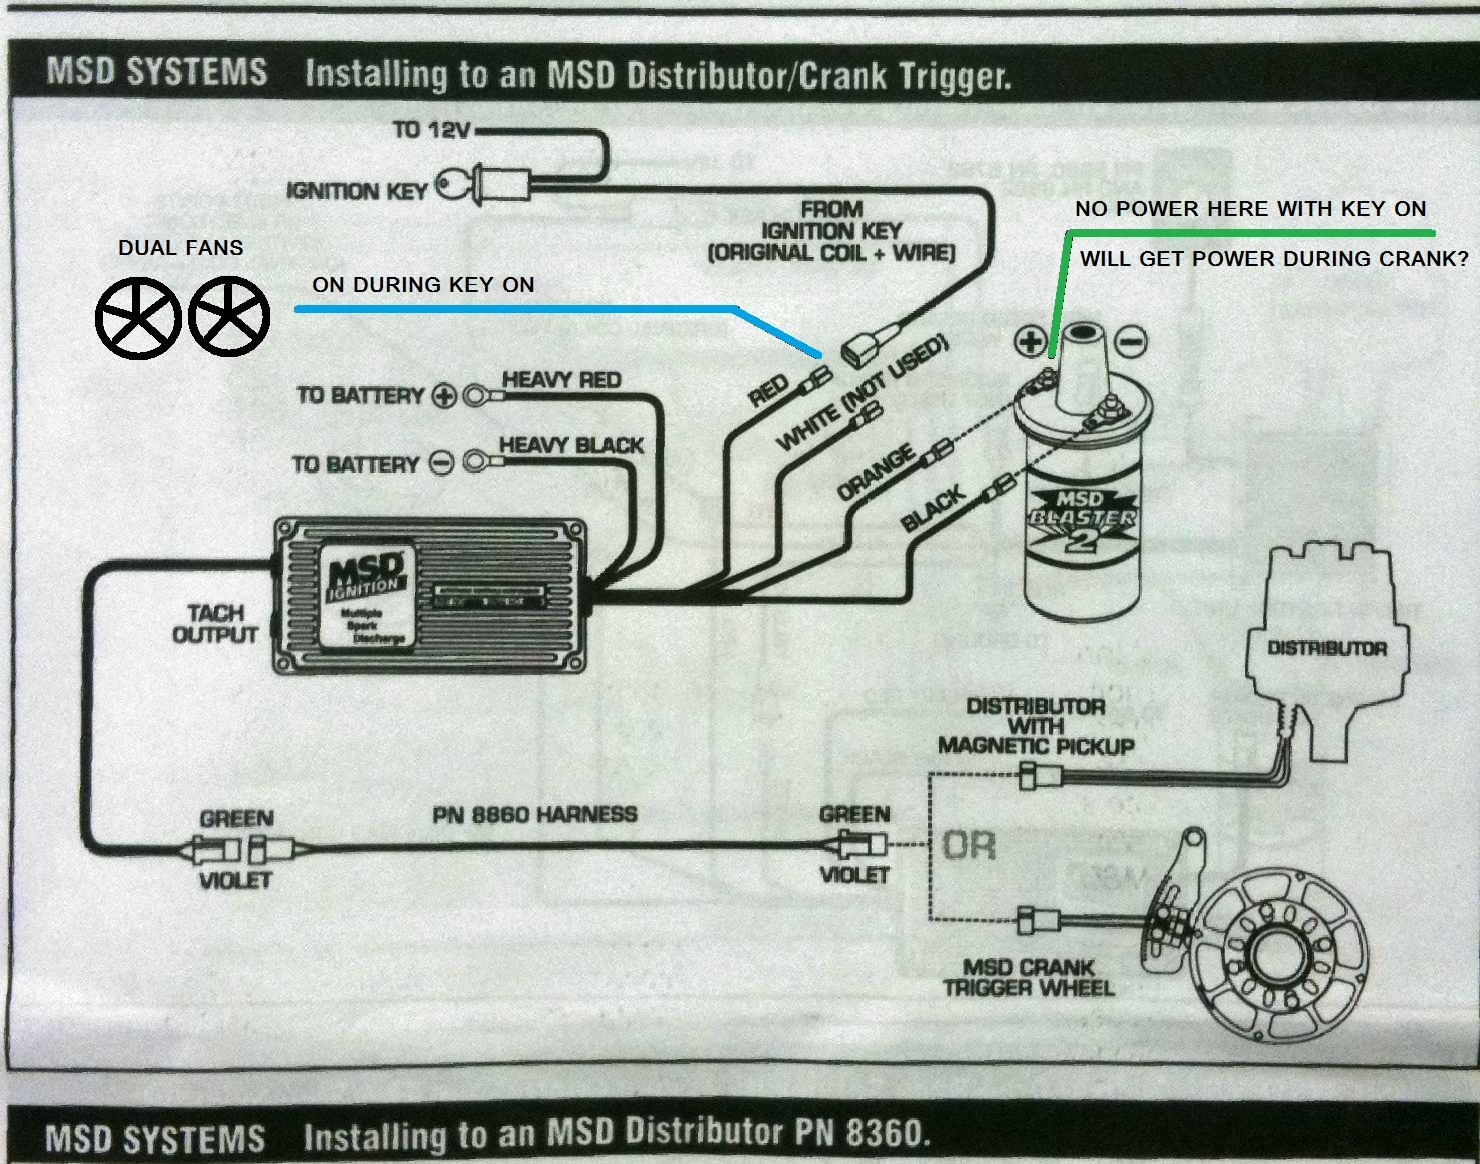 114688d1288762436 coil wire always key only wiring msd is the coil wire always on or key on only? ford mustang forum MSD 6AL Wiring Diagram Chevy at mifinder.co